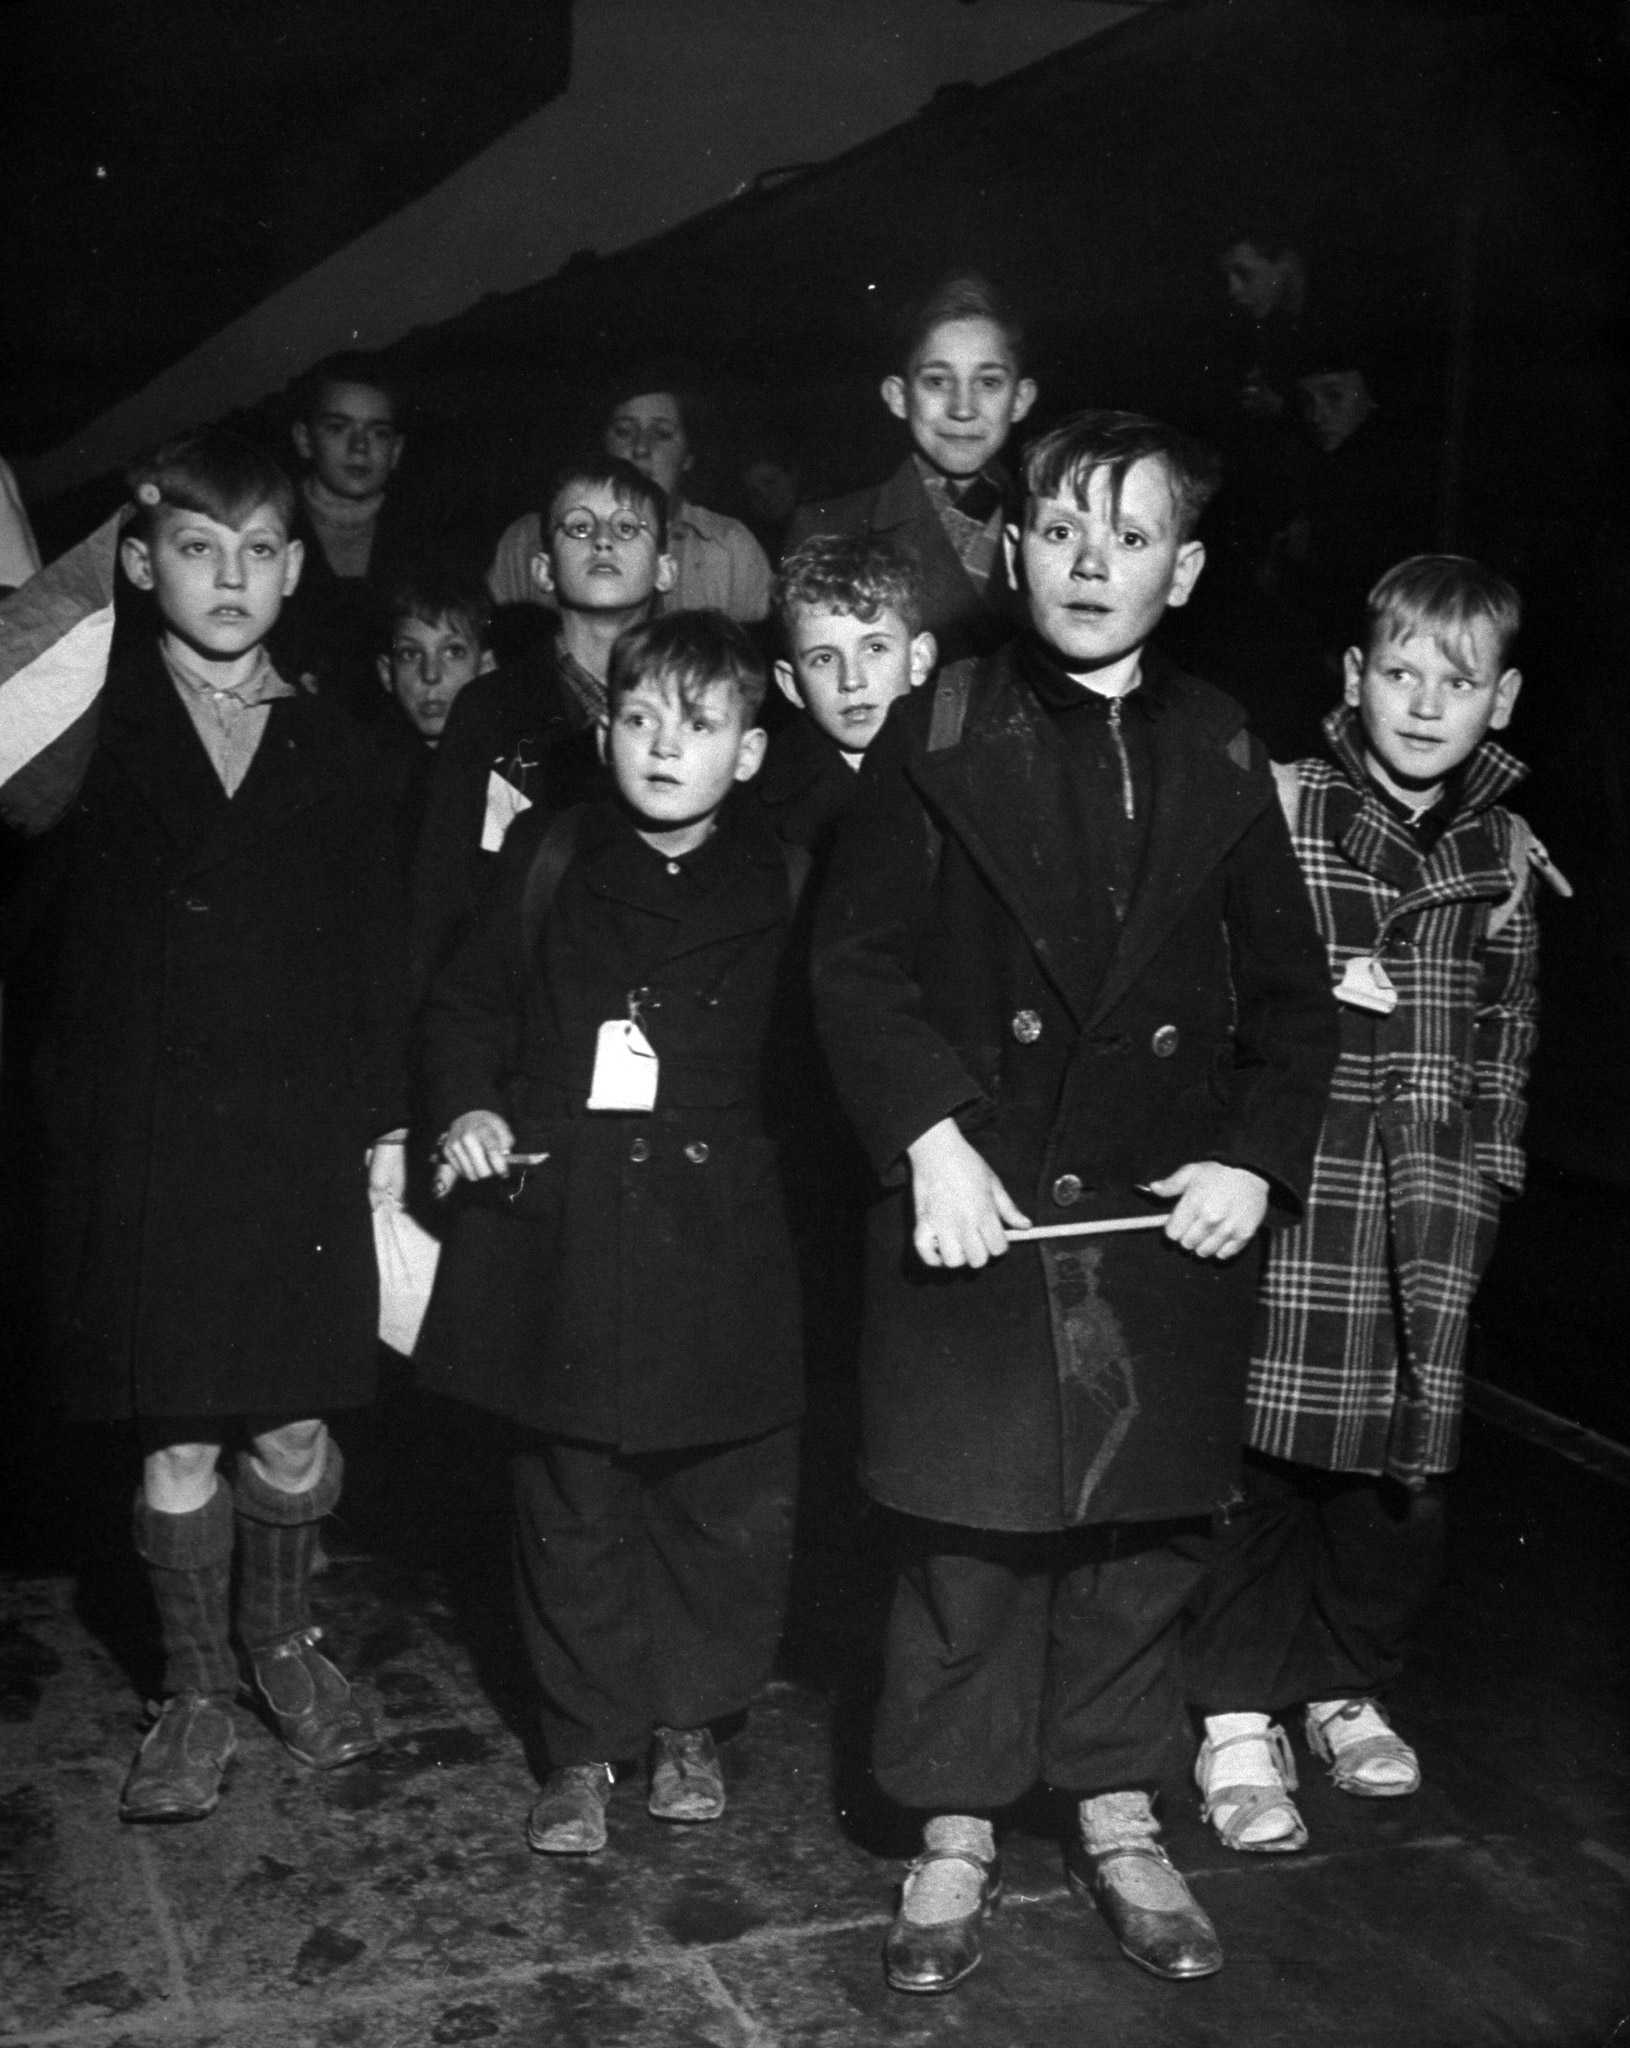 A group of Dutch refugee children arriving at Coventry Station in the U.K., in 1945.